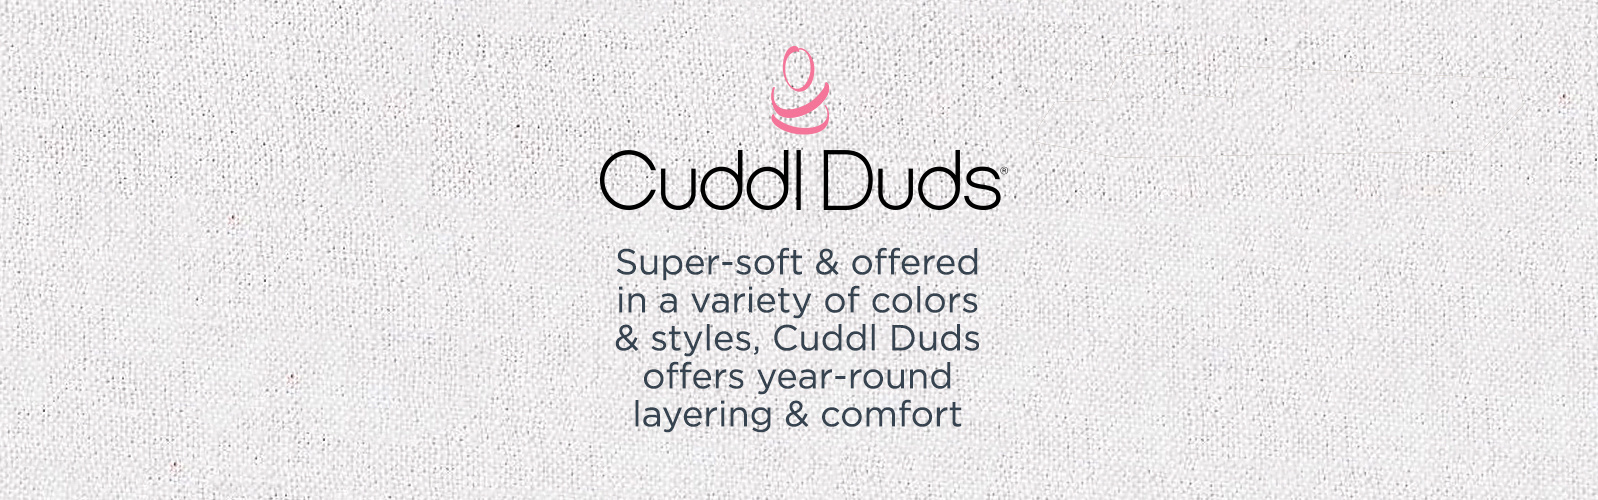 Cuddl Duds - Super-soft & offered in a variety of colors & styles, Cuddl Duds offers year-round layering & comfort